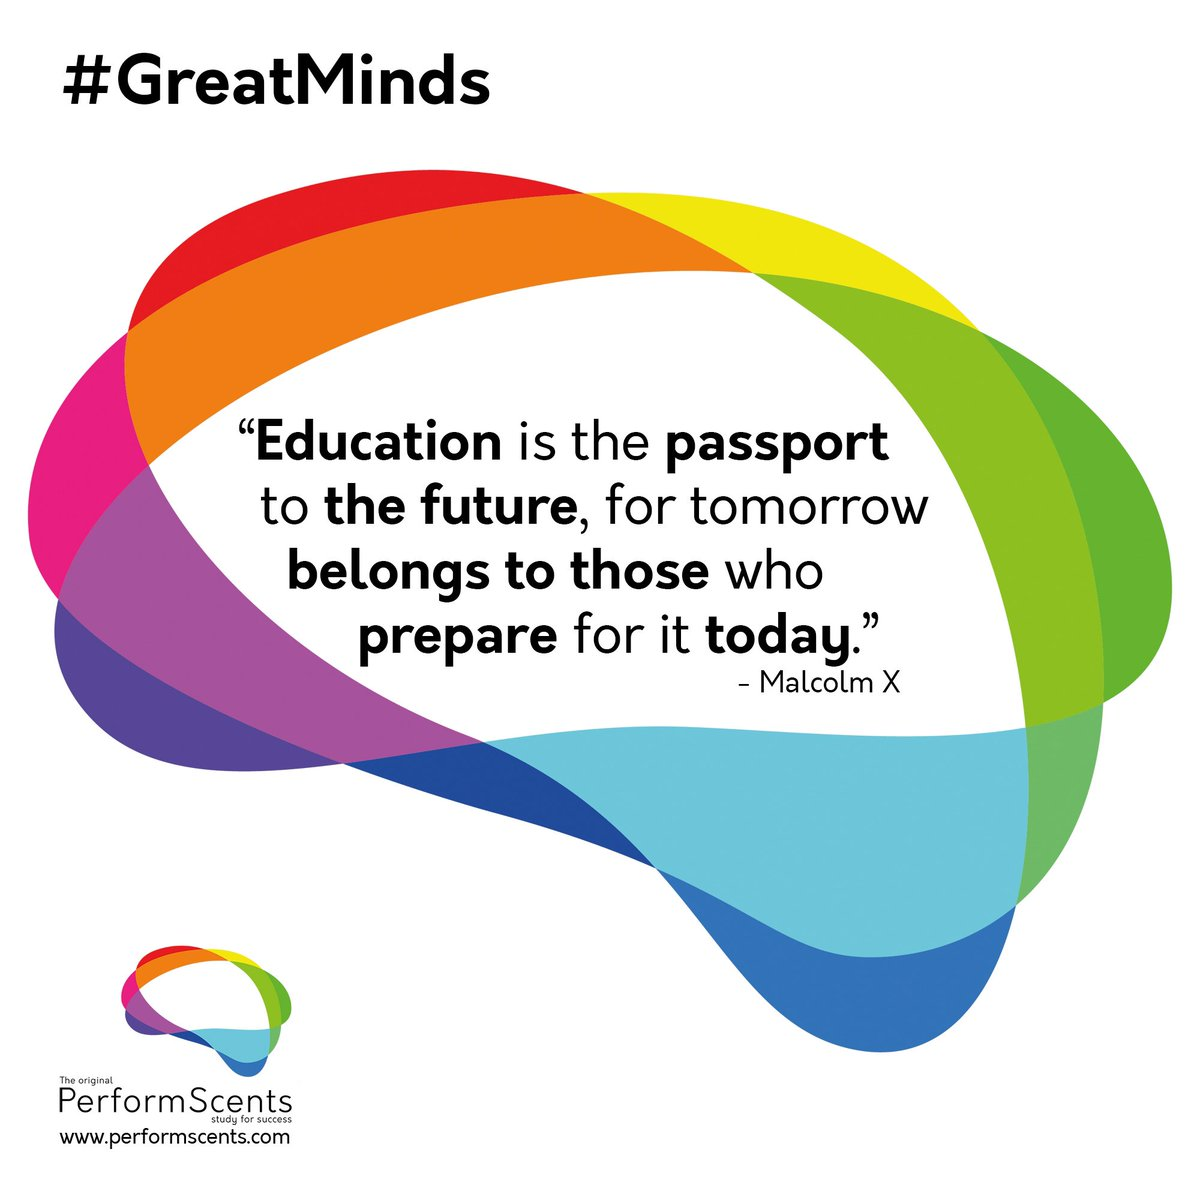 """""""Education is the passport to the future, for tomorrow belongs to those who prepare for it today.""""  - Malcolm X #GreatMinds #studyforsuccess #study #exams #studymotivation #studytime #highers #gsce #alevels #alevel #gcses #sqa #studyhacks #nat5pic.twitter.com/A6t5OMrDYC"""